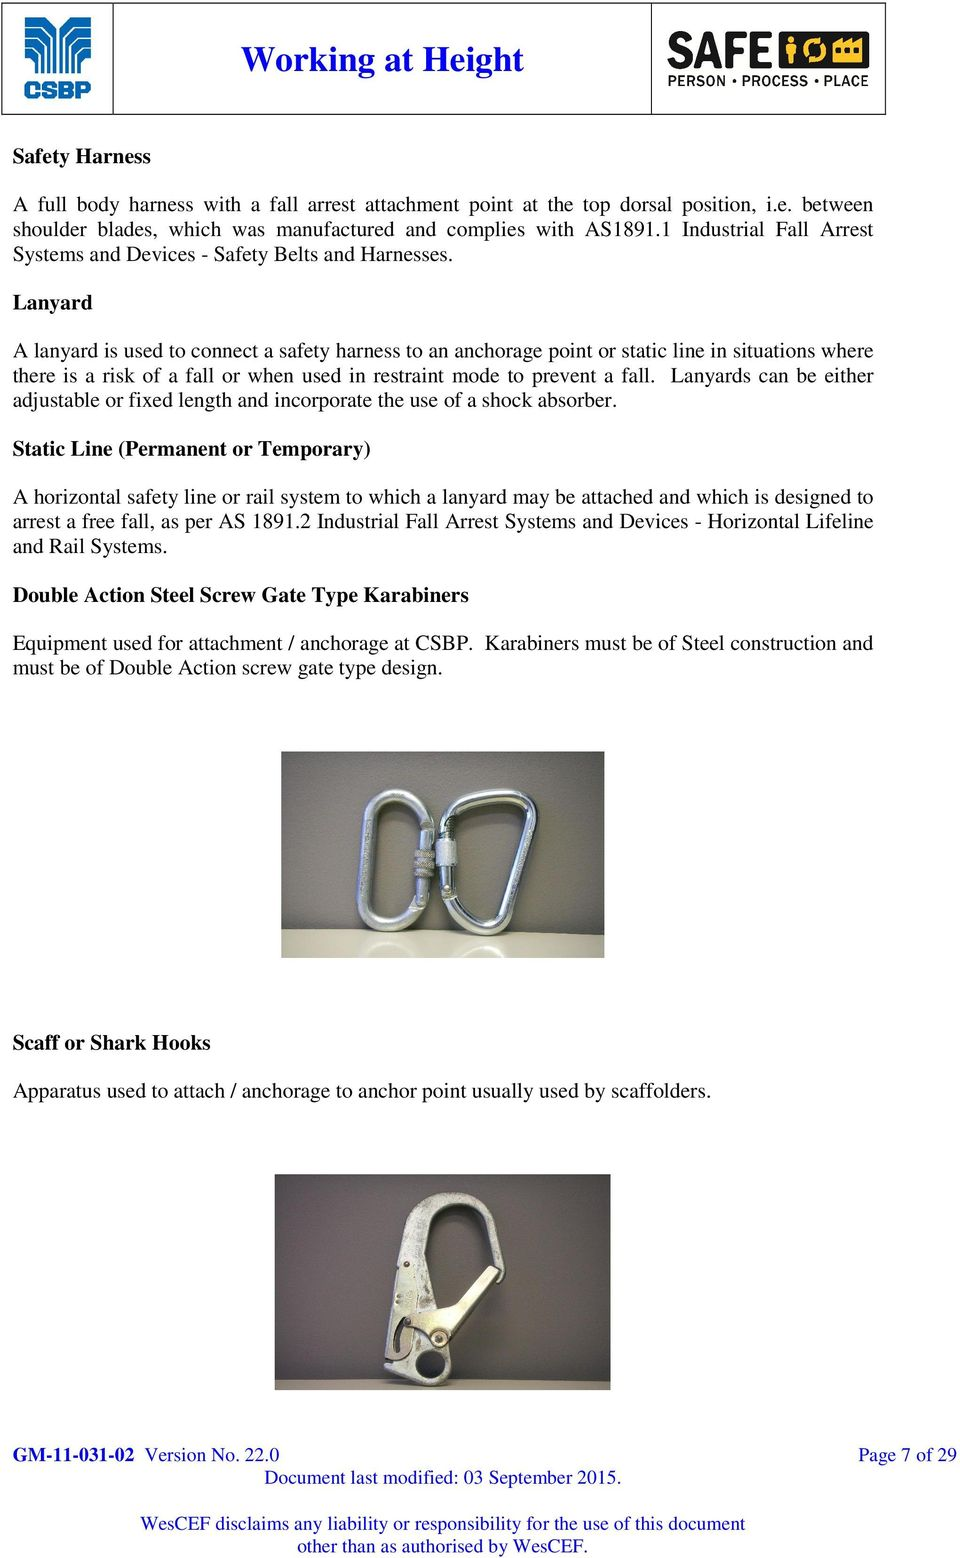 Lanyard A lanyard is used to connect a safety harness to an anchorage point or static line in situations where there is a risk of a fall or when used in restraint mode to prevent a fall.